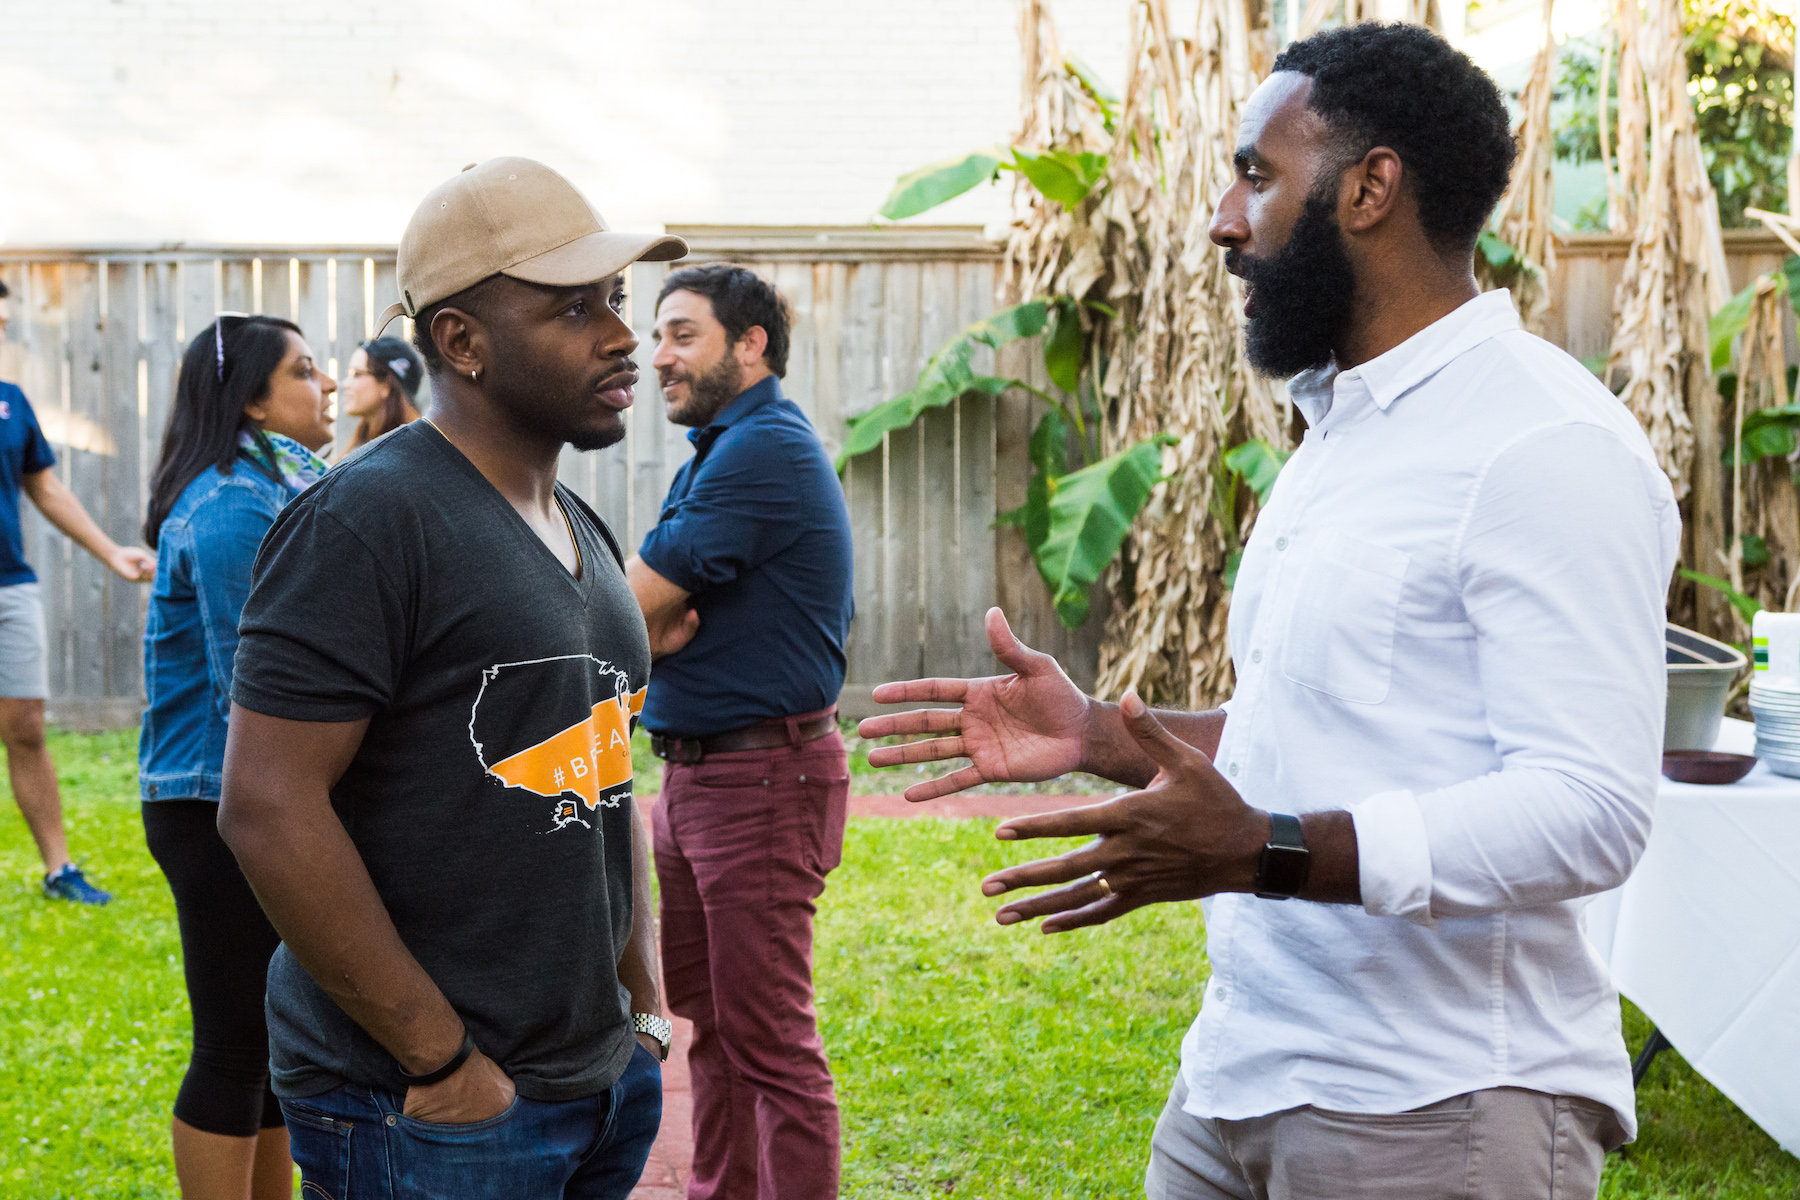 Fellow Damola and his coach Tony connect at the crawfish boil